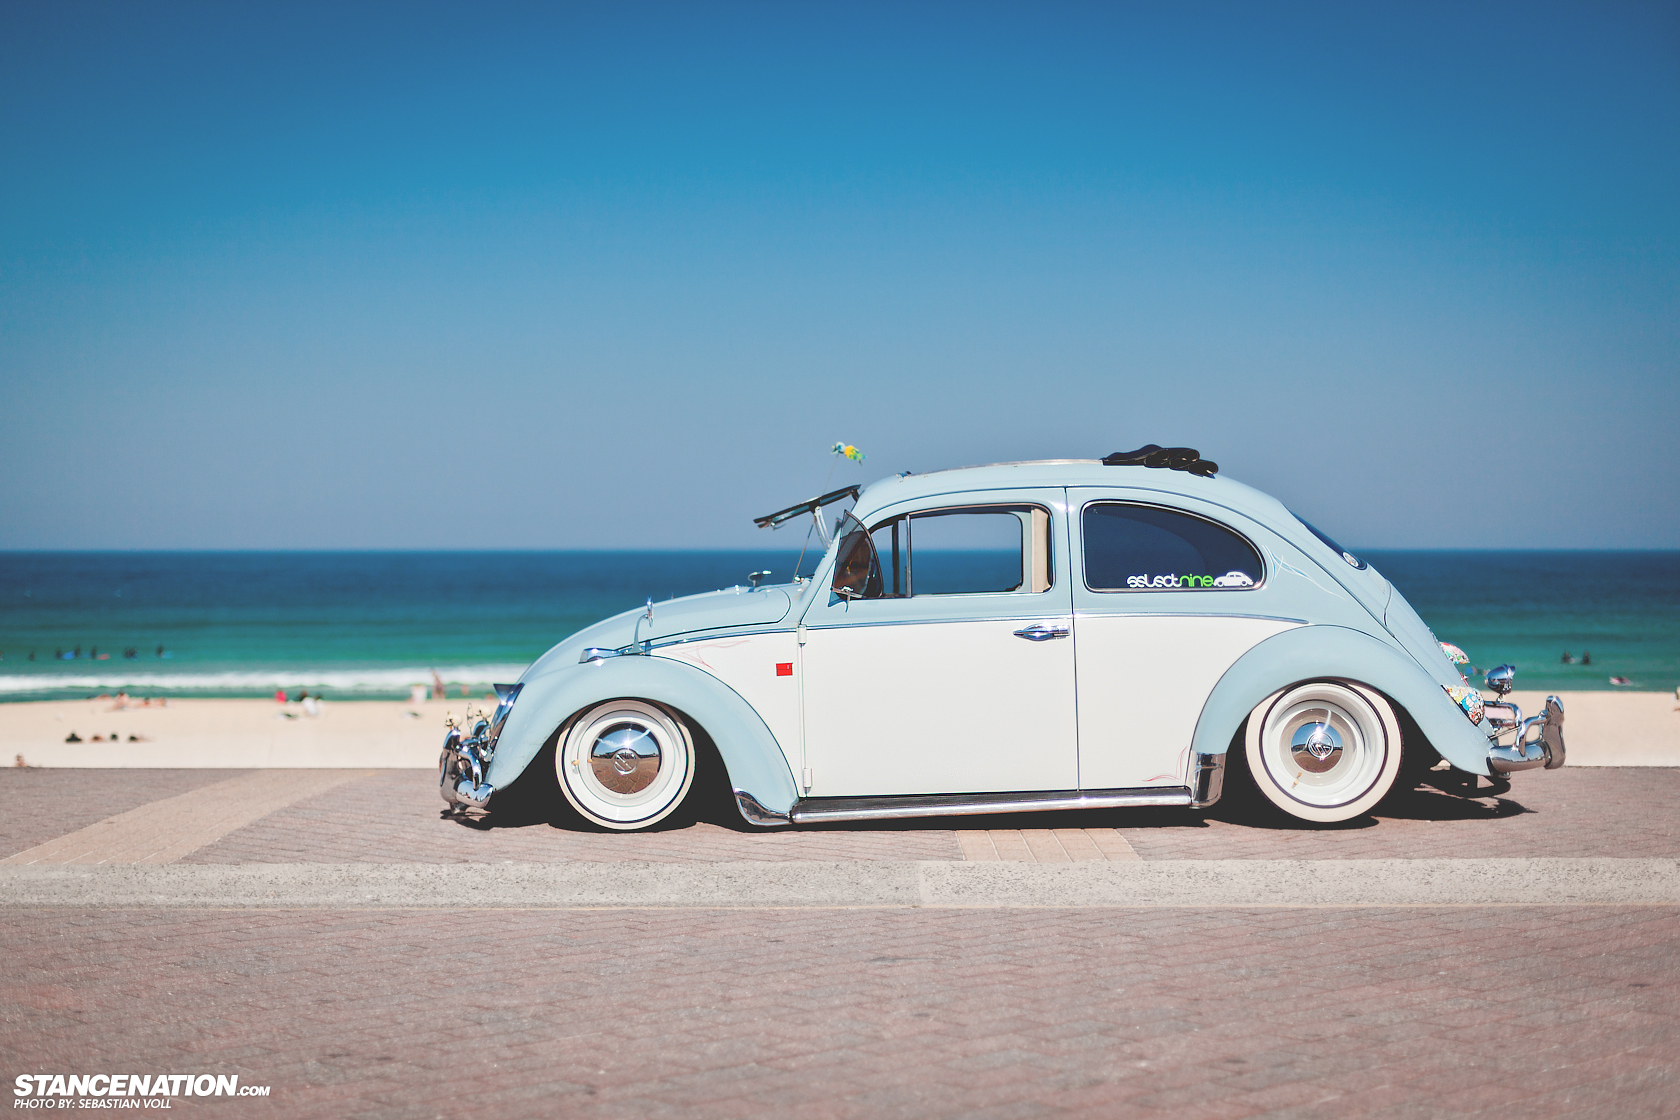 Buggin Bhathiya S Gorgeous Vw Beetle Stancenation